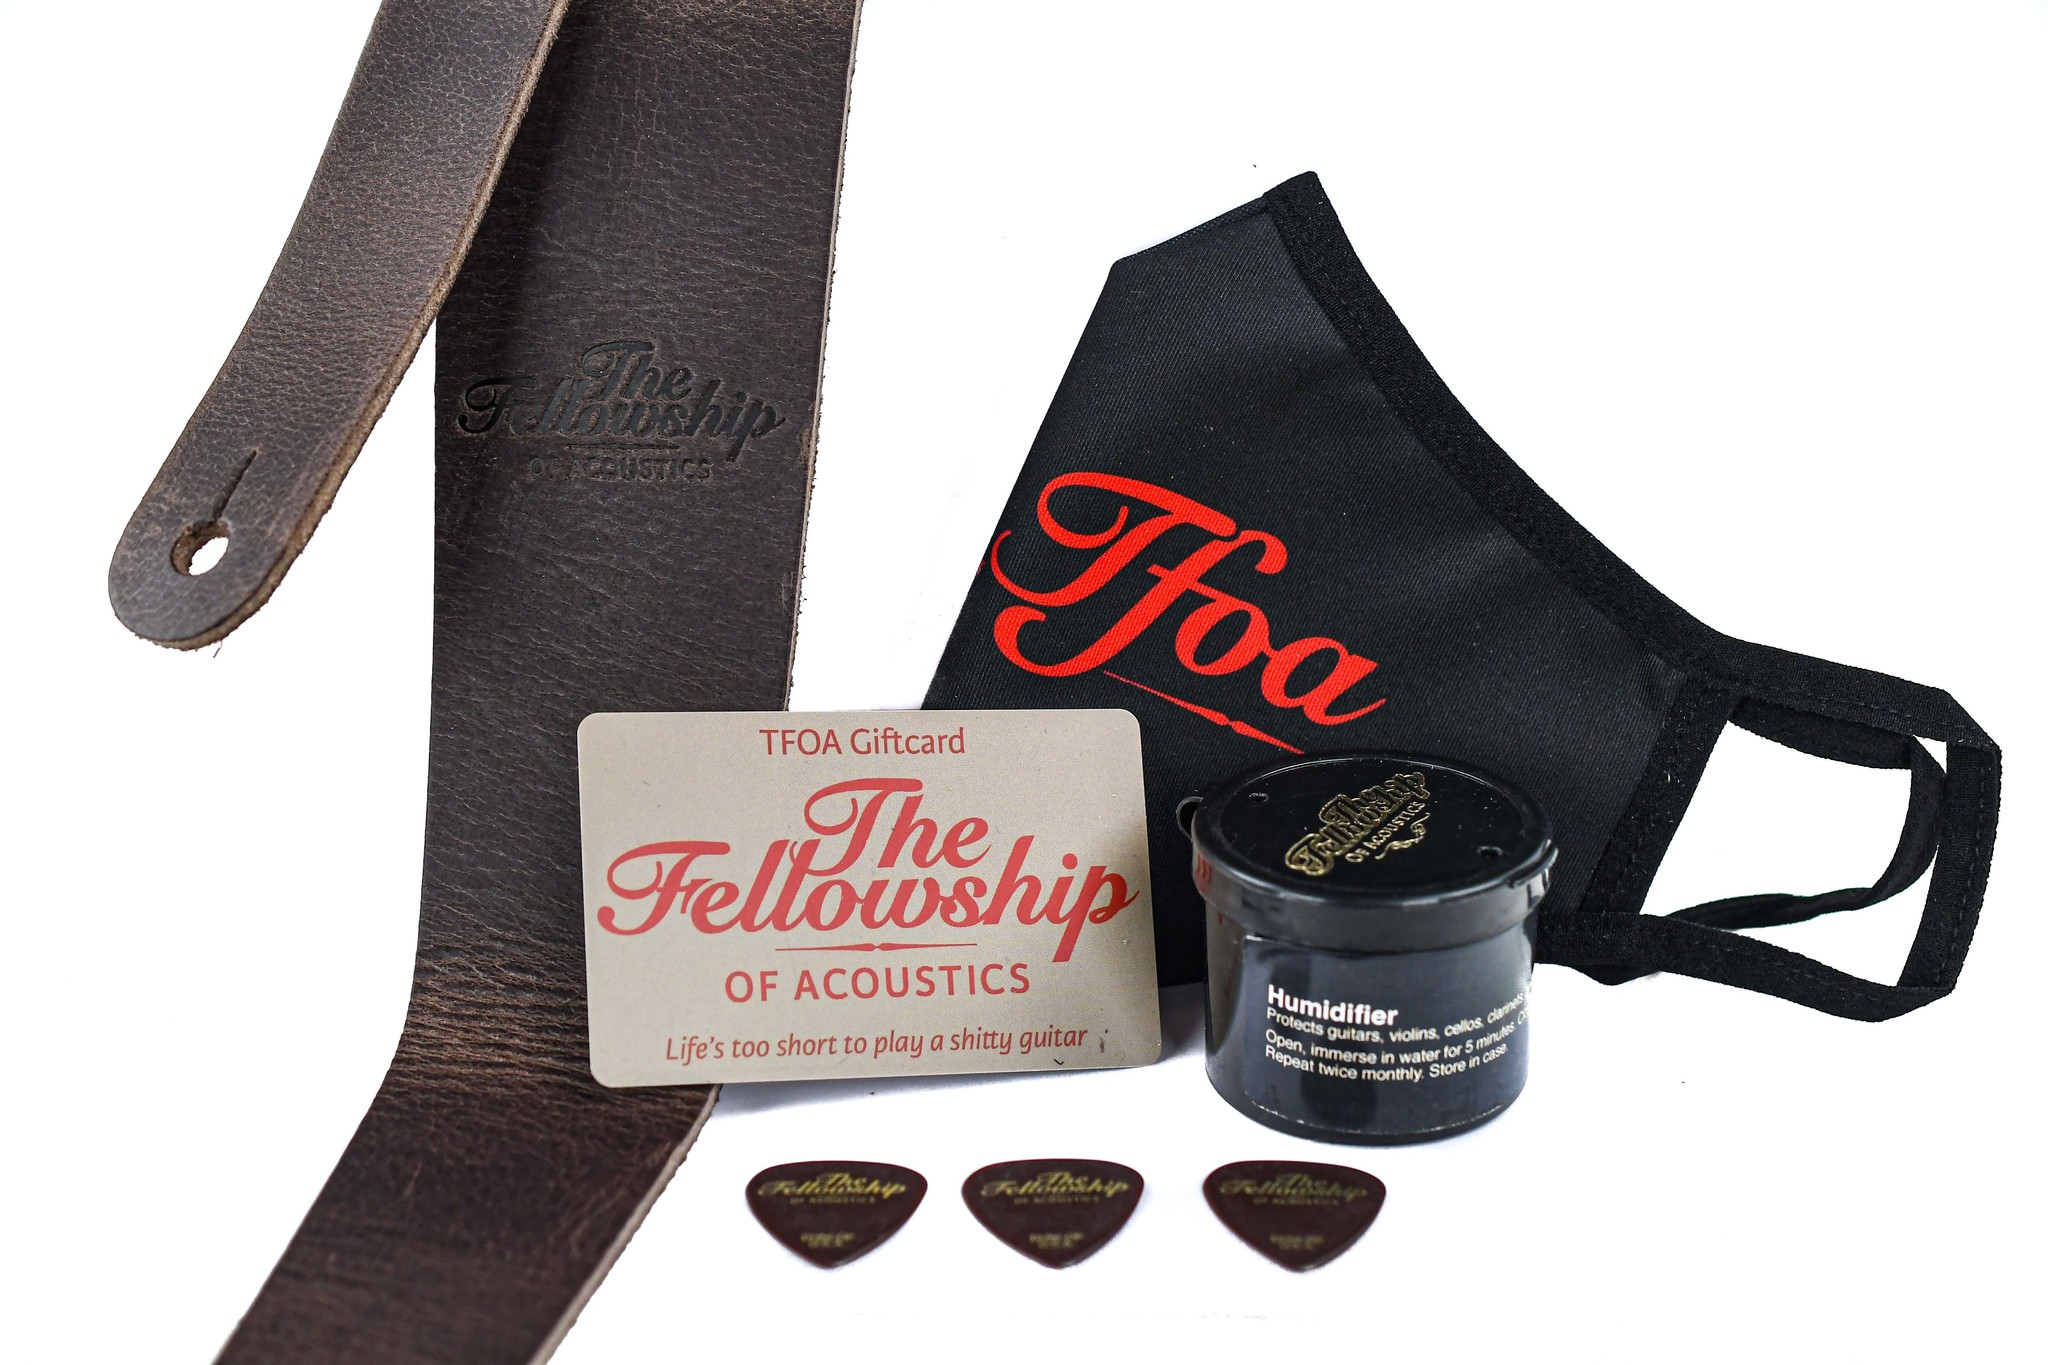 FREE TFOA CARE PACKAGE!